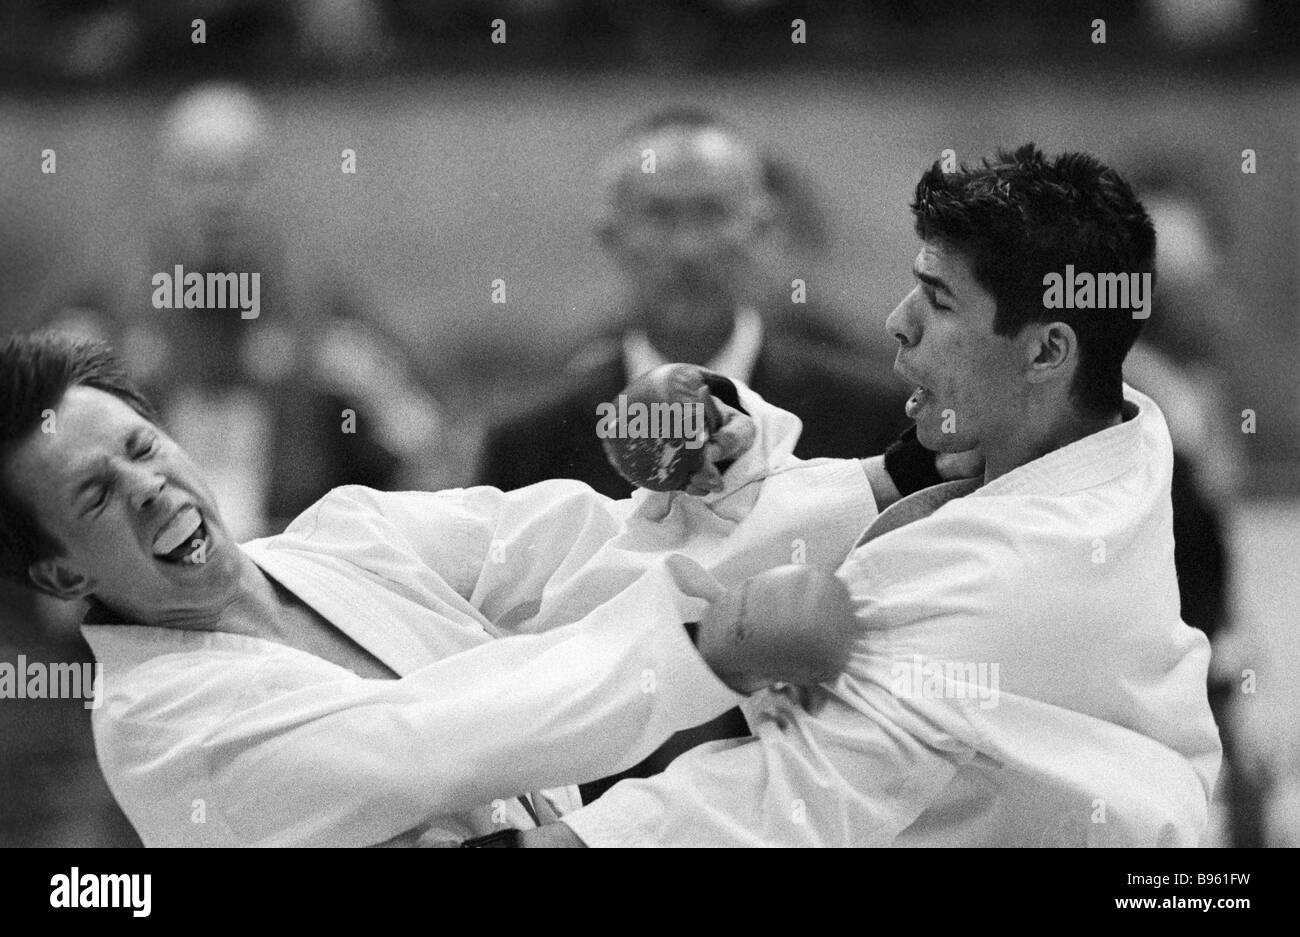 A meet in a European karate championship - Stock Image